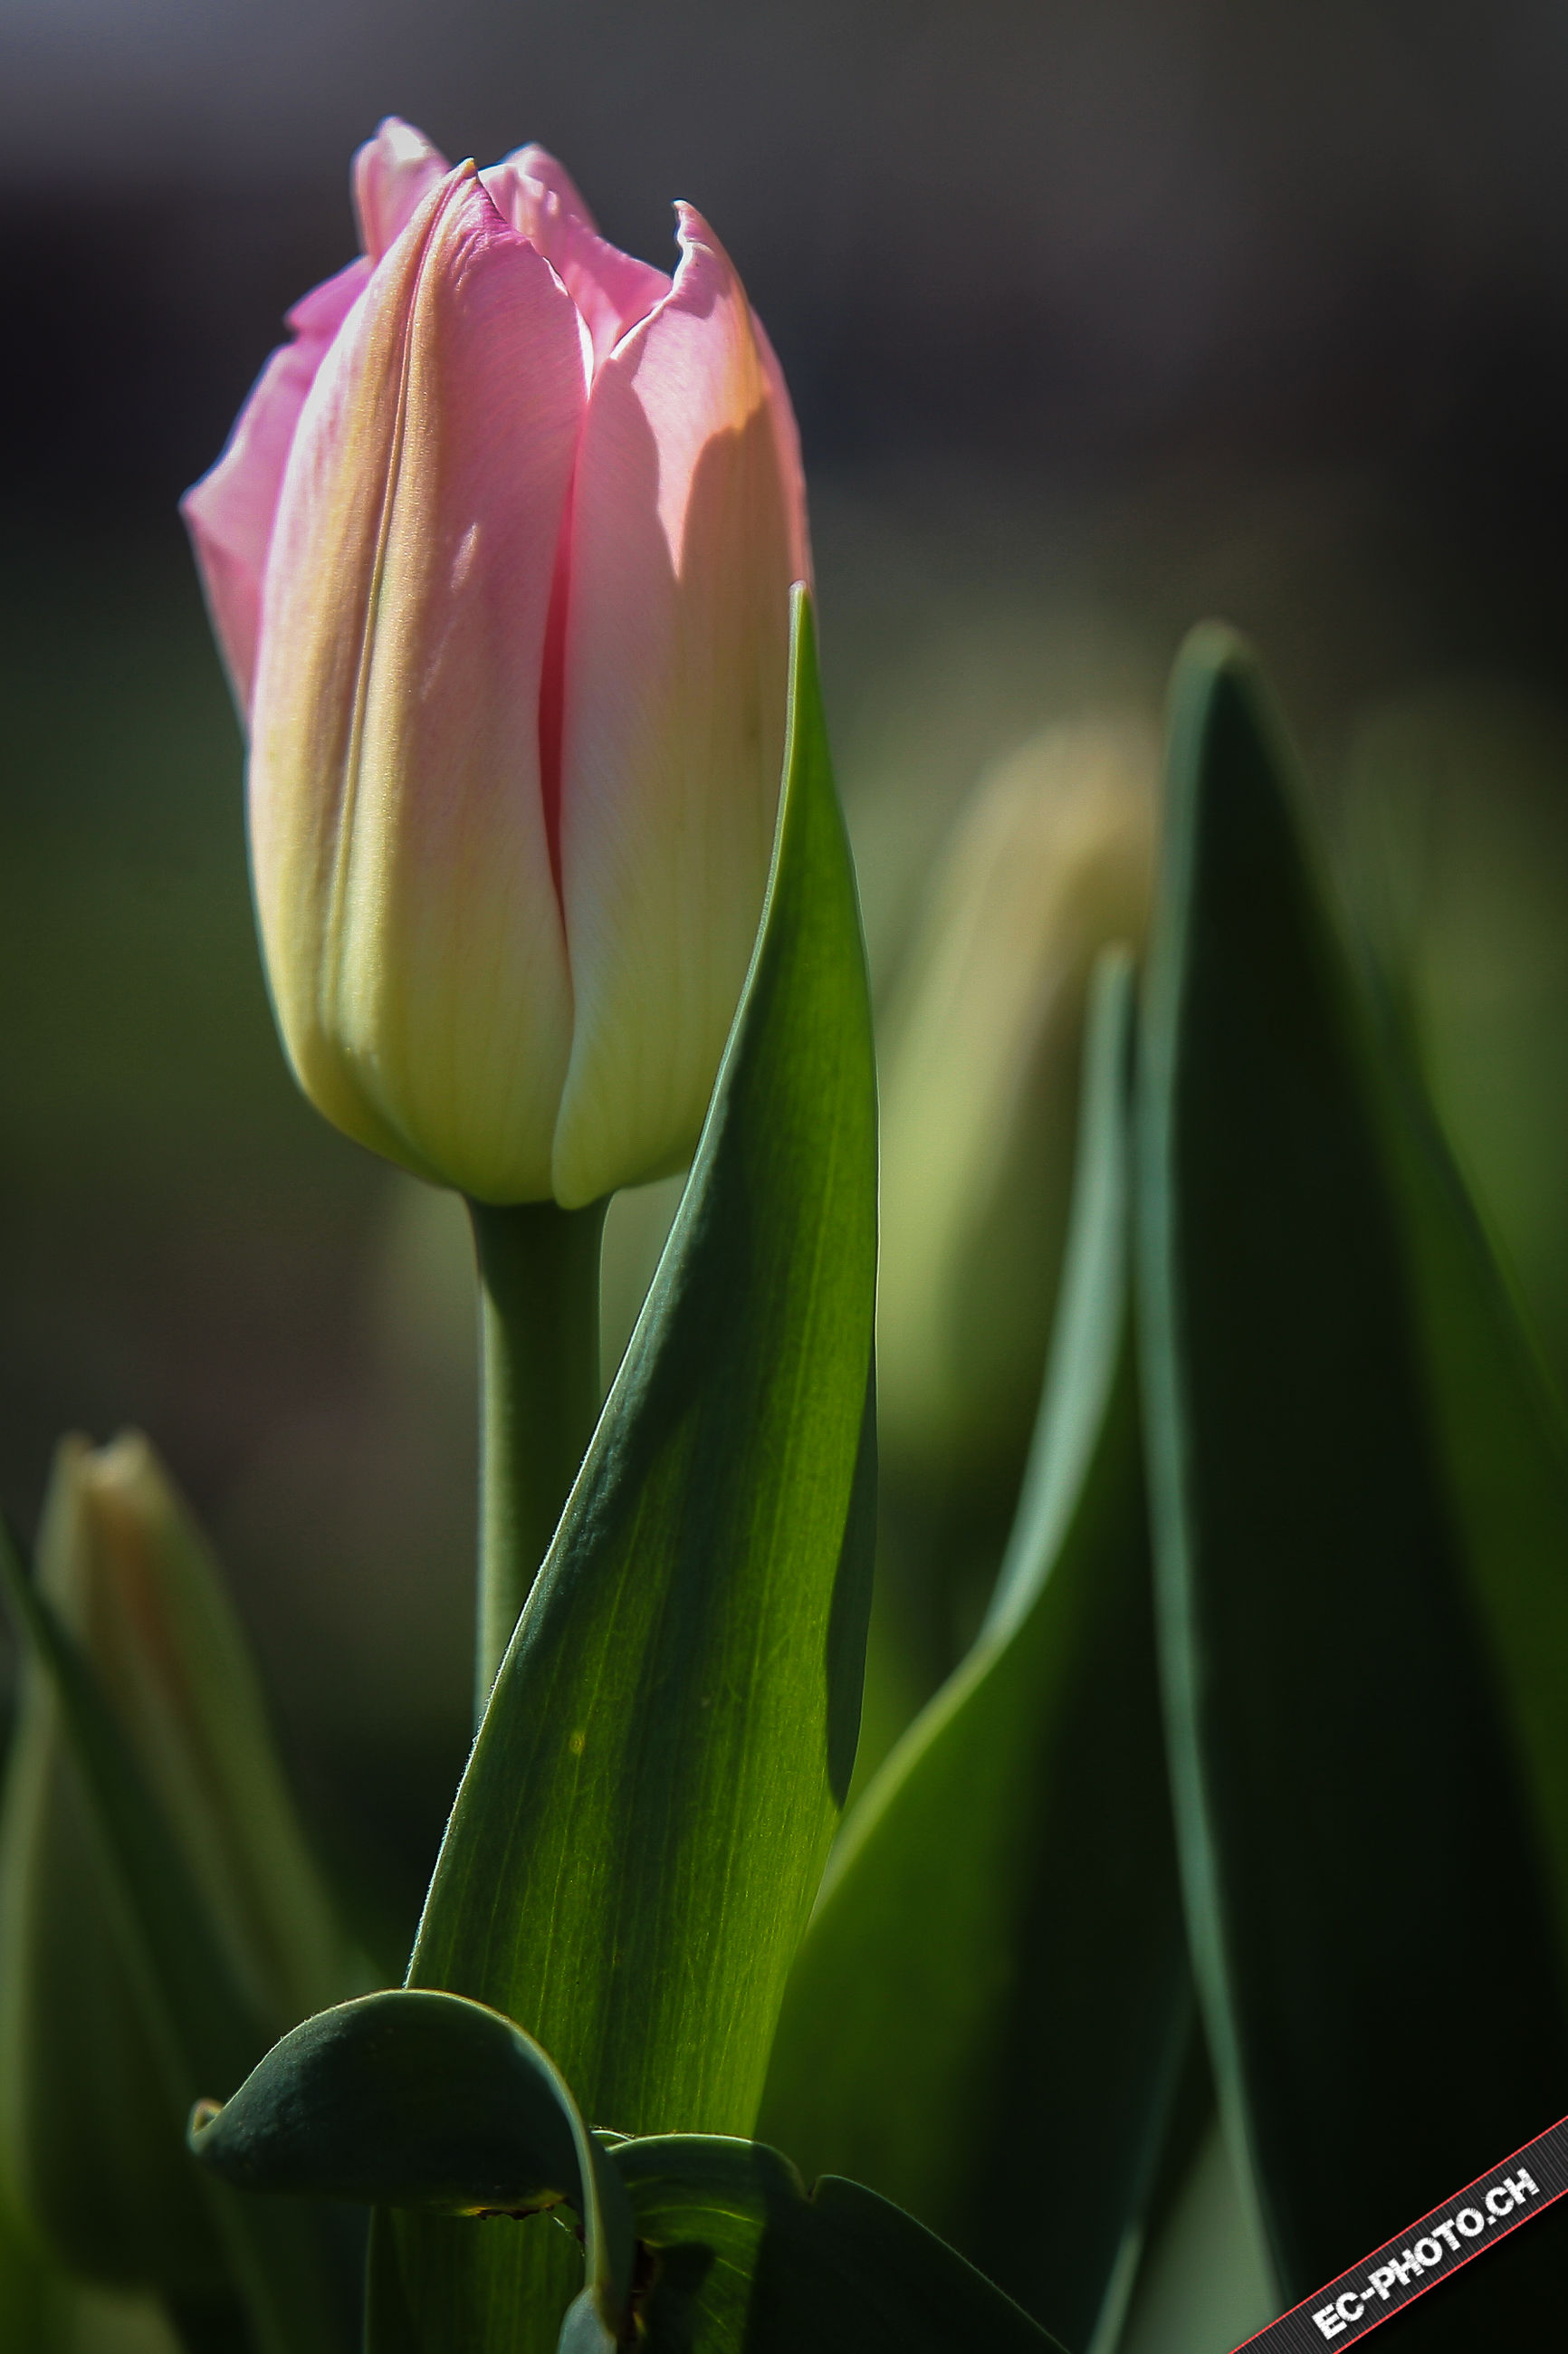 flower, petal, freshness, growth, fragility, close-up, flower head, beauty in nature, focus on foreground, nature, plant, bud, single flower, stem, blooming, leaf, selective focus, pink color, in bloom, tulip